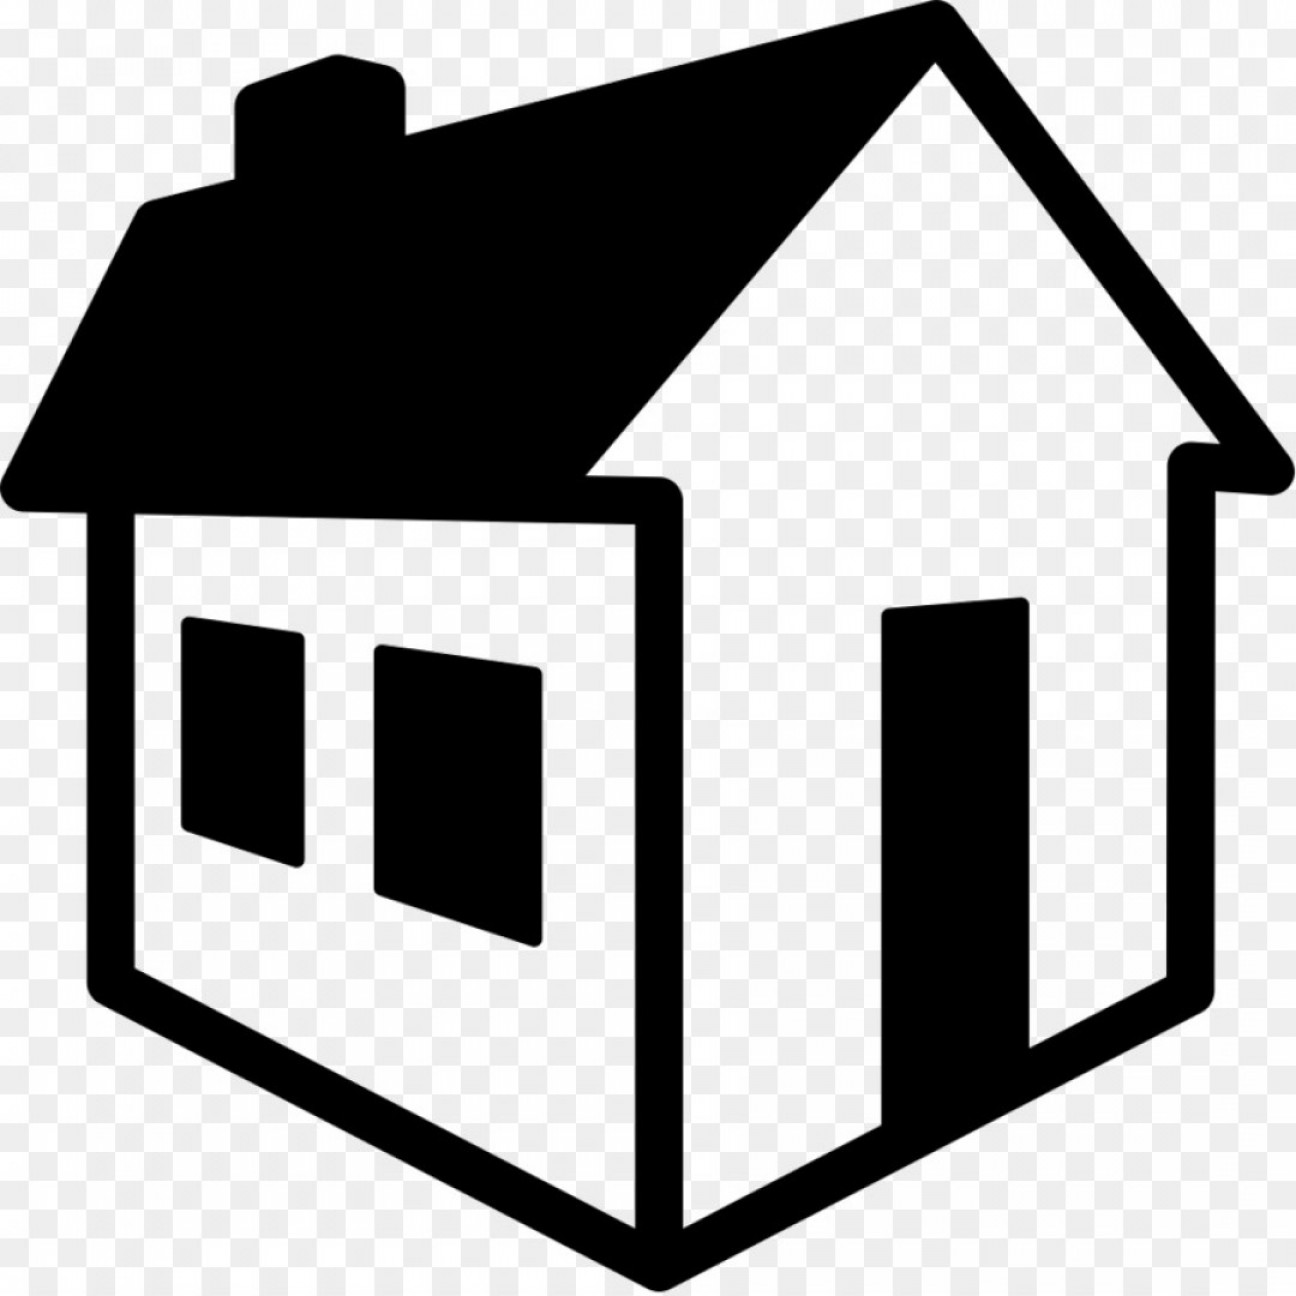 Shed PNG Vector: Png Vector Graphics Clip Art Computer Icons House Buil